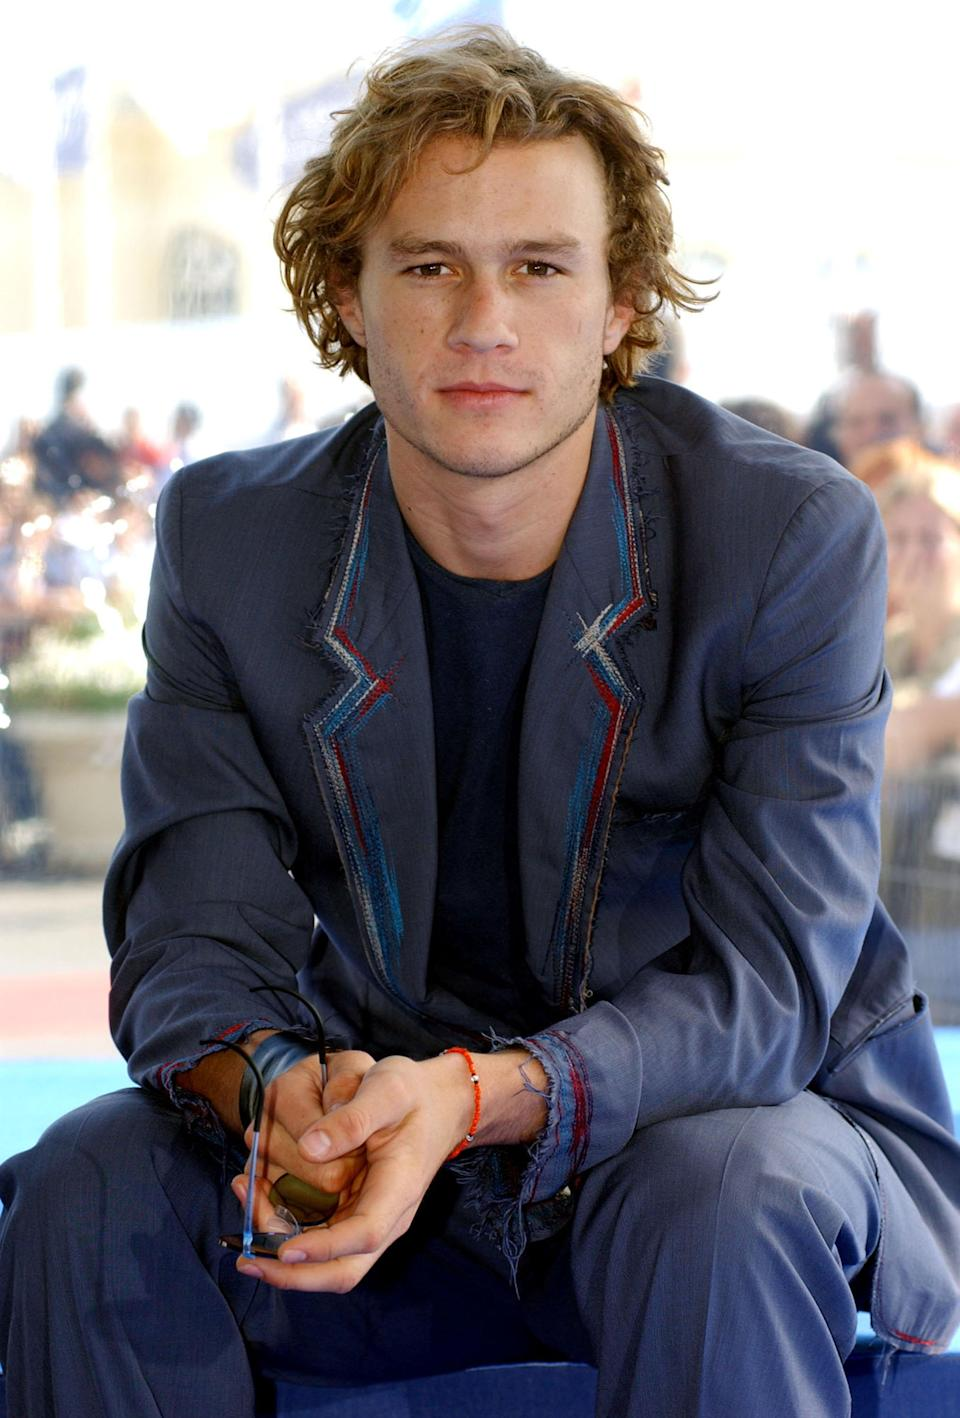 Heath Ledger passed away, age 28, in 2008 by an accidental drug overdose. Source: Getty